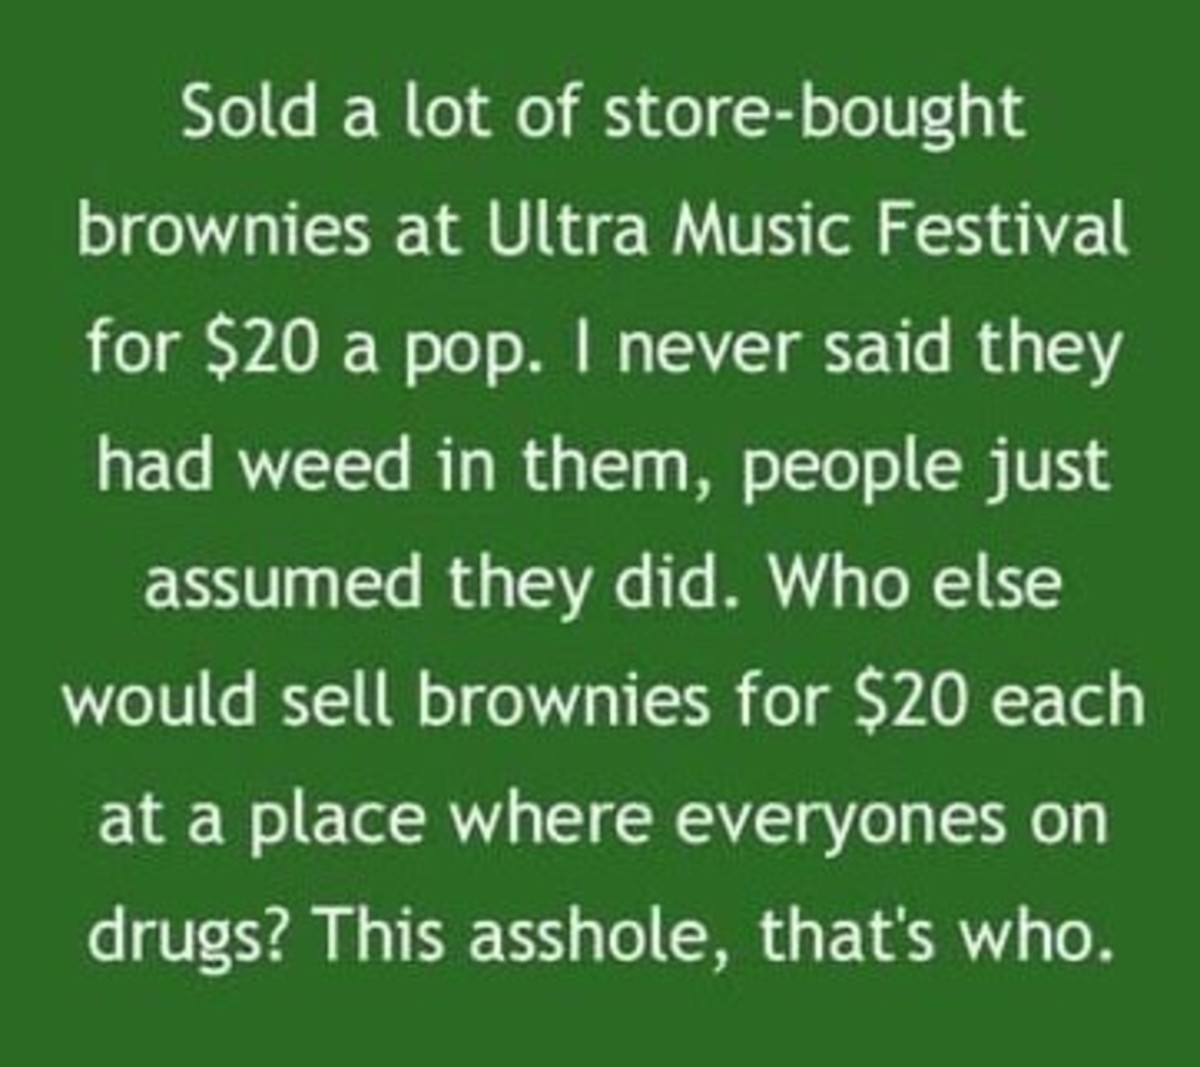 """money. .. actually happened to my friends at firefly one year. this guy went around selling """"edibles"""" that didn't really have weed in them despite his claims th"""